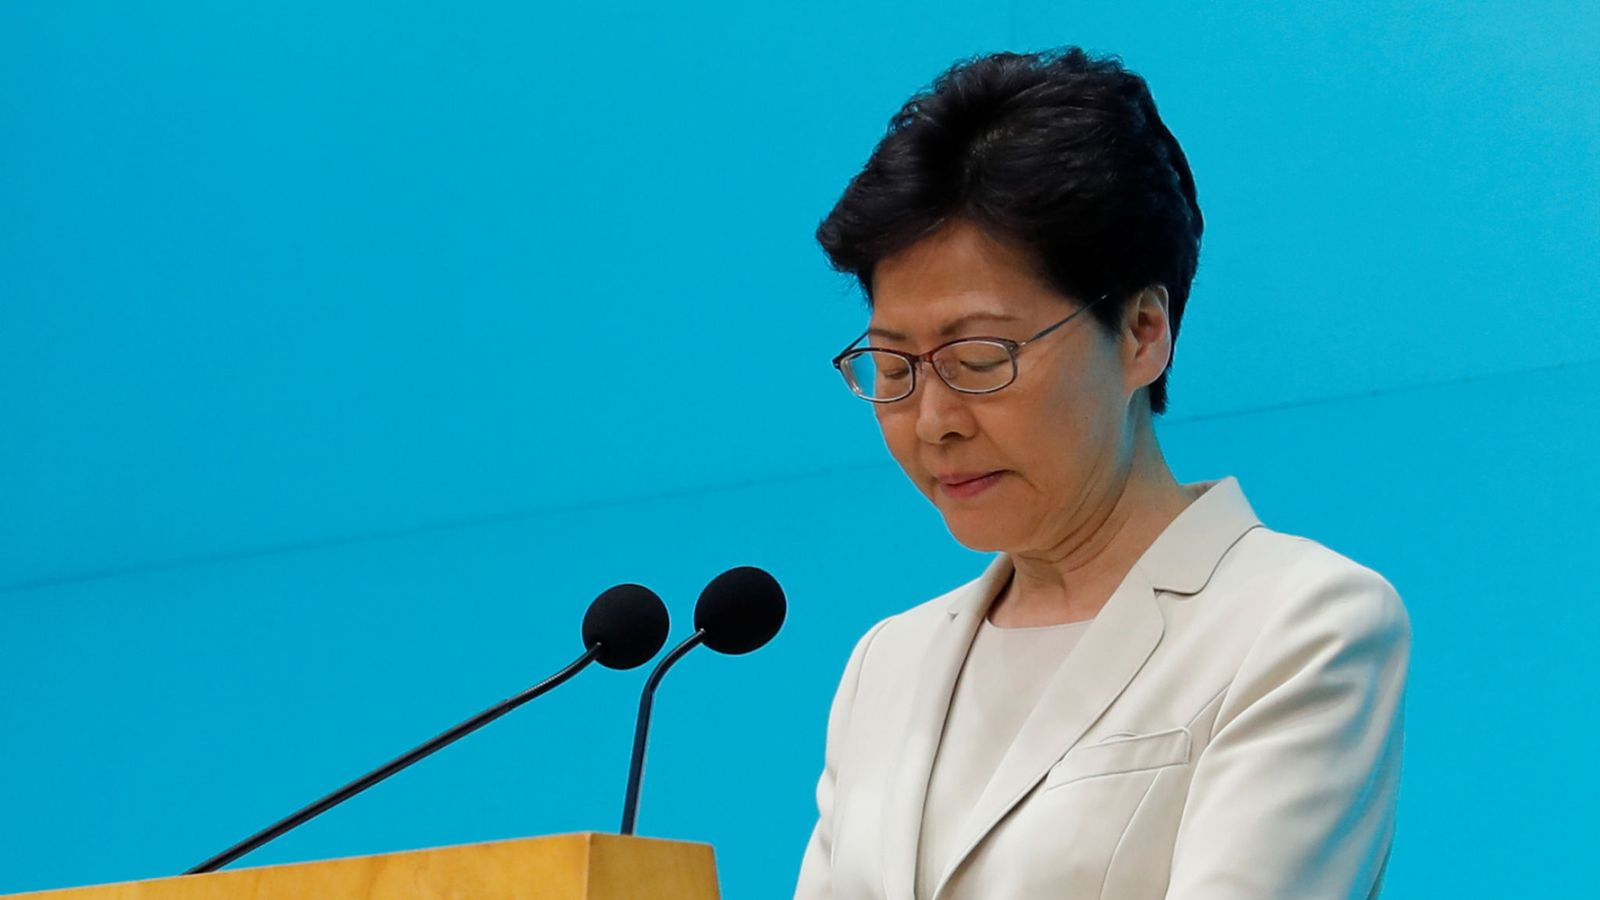 skynews-carrie-lam-hong-kong_4696795.jpg